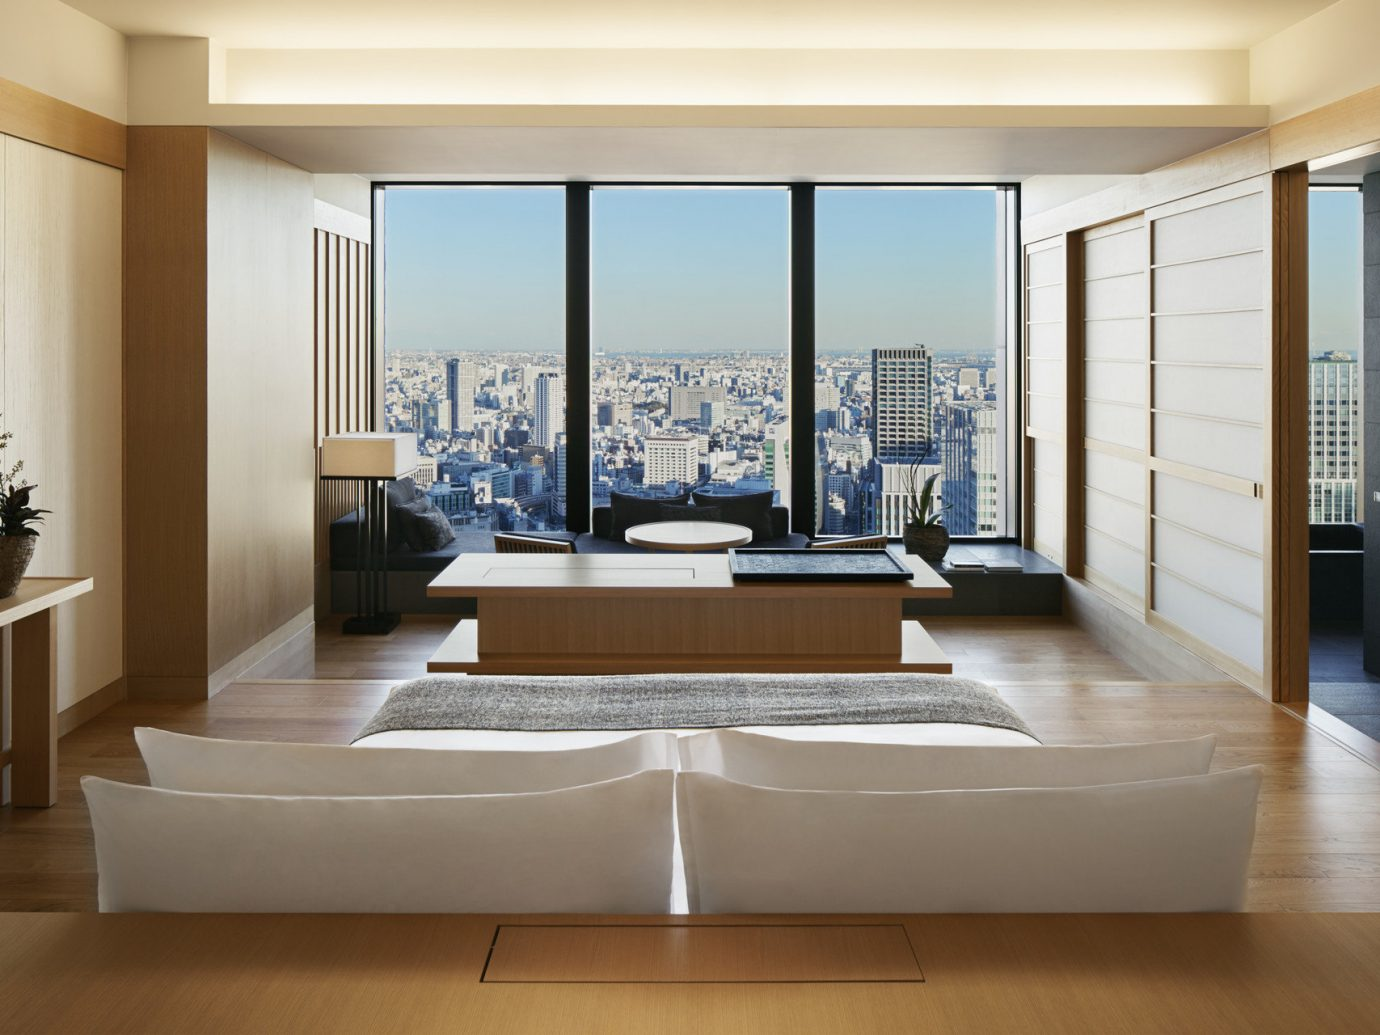 The 10 Best Hotels in Tokyo, Japan (with Prices) | Jetsetter